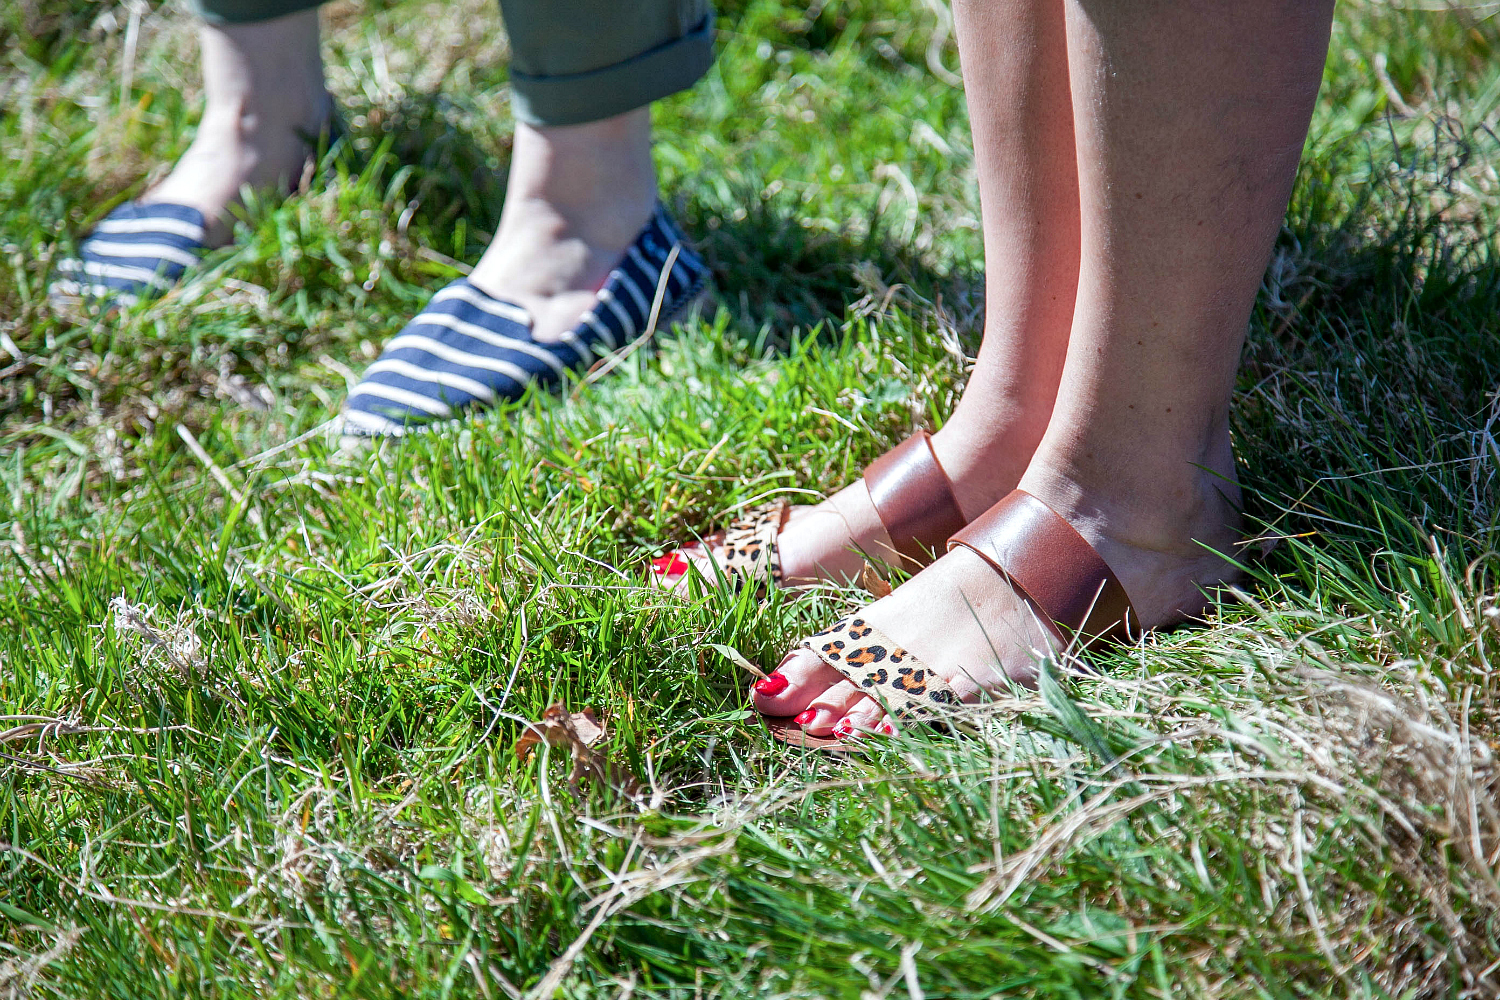 The even more social side of social media and the perfect picnic with Joules